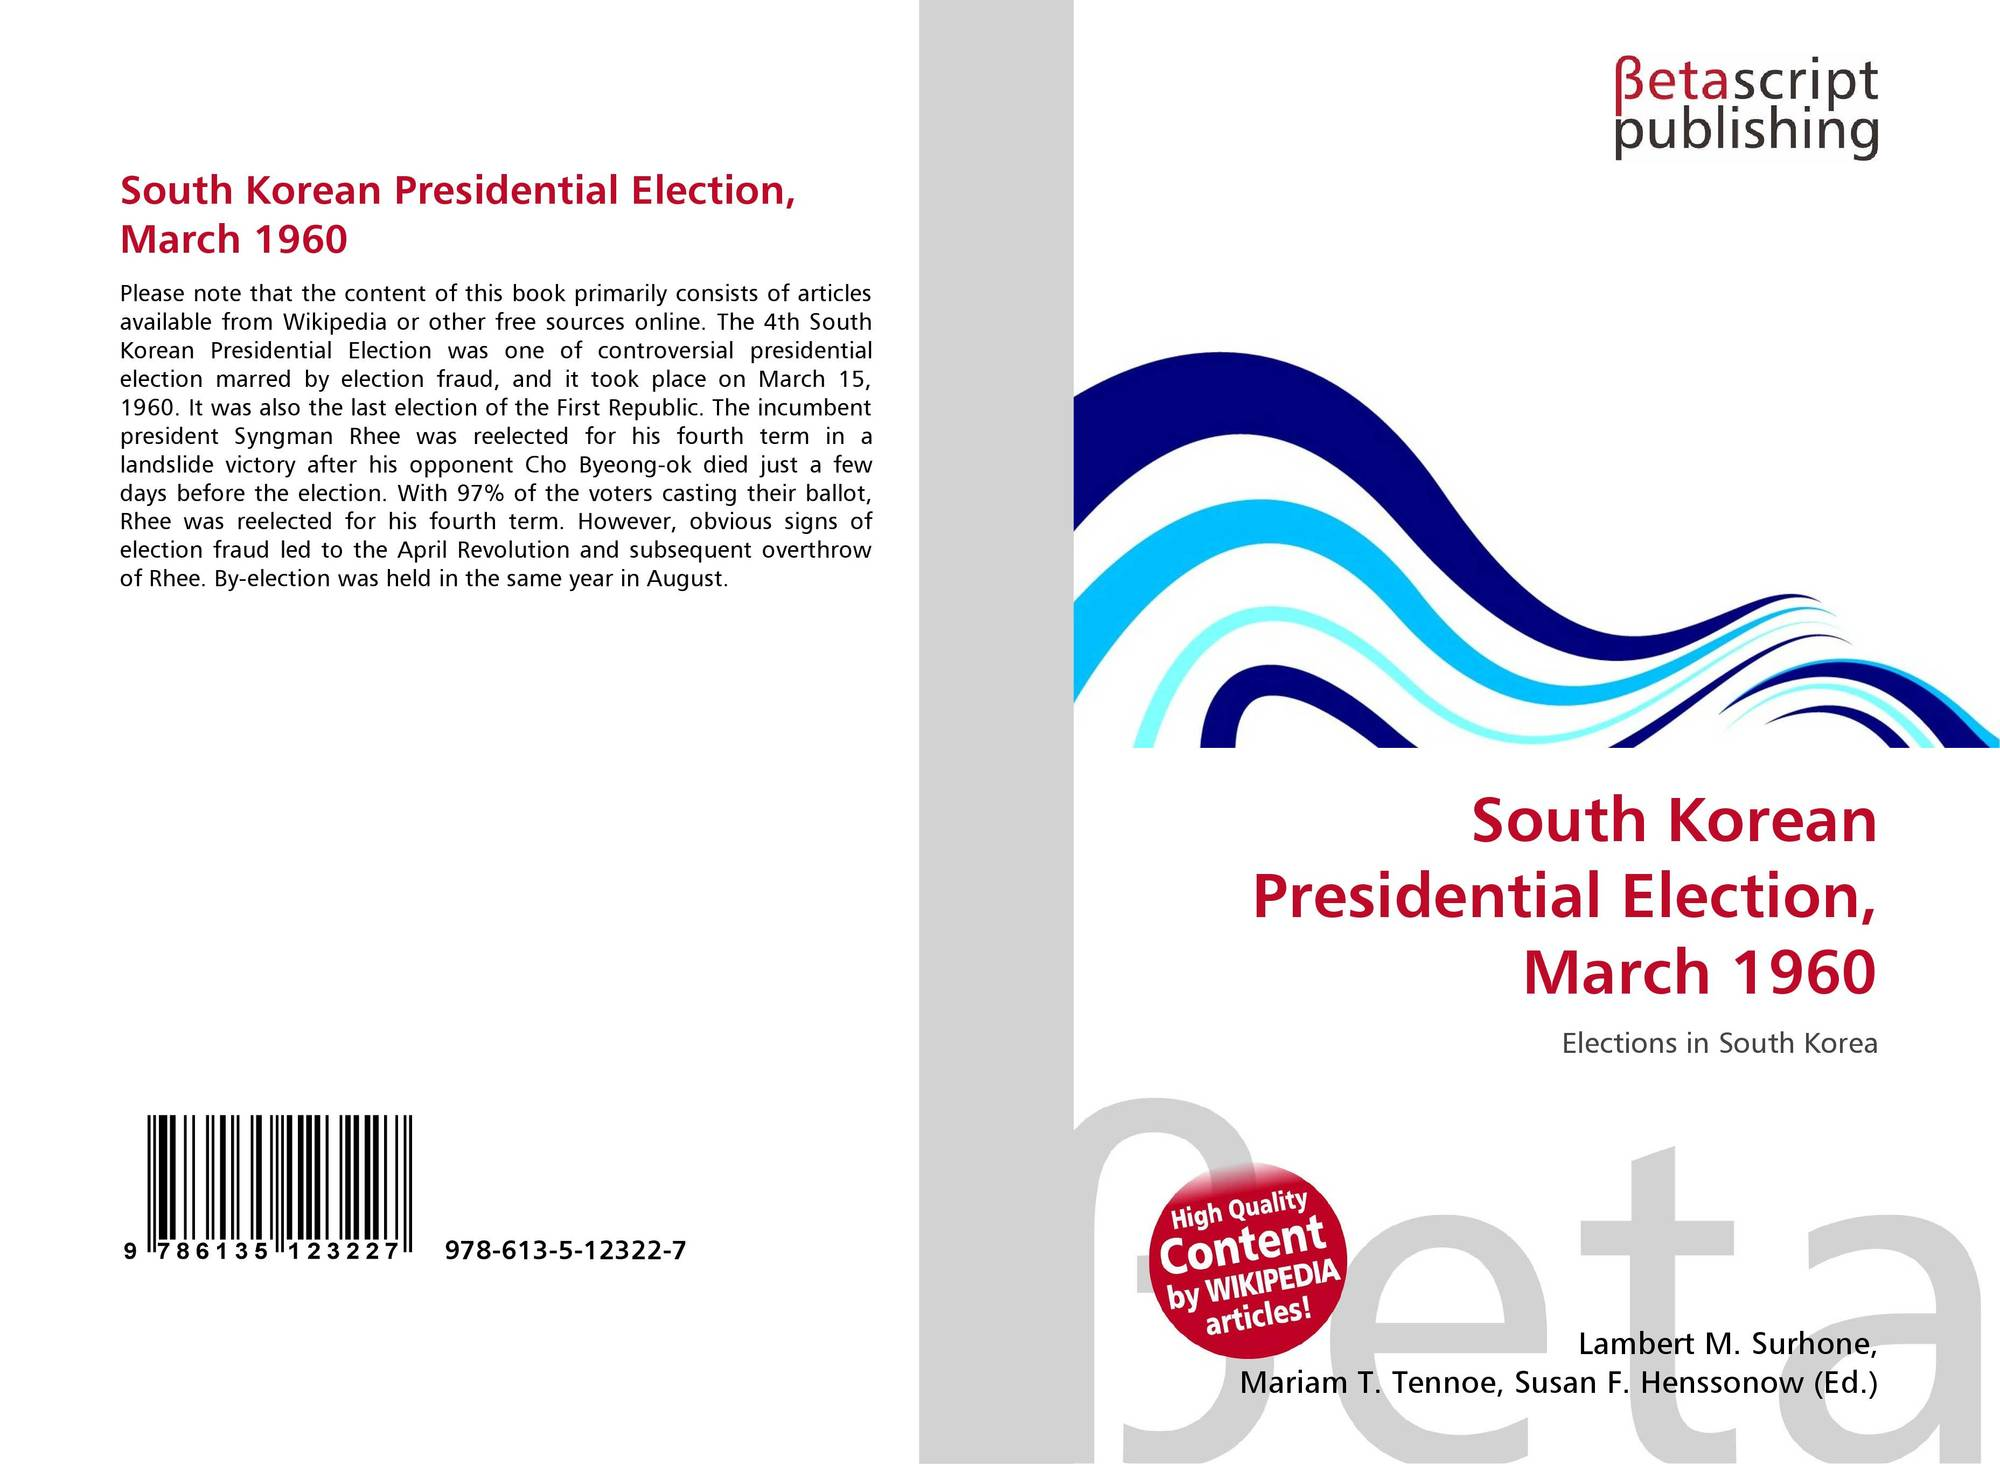 March 1960 South Korean presidential election